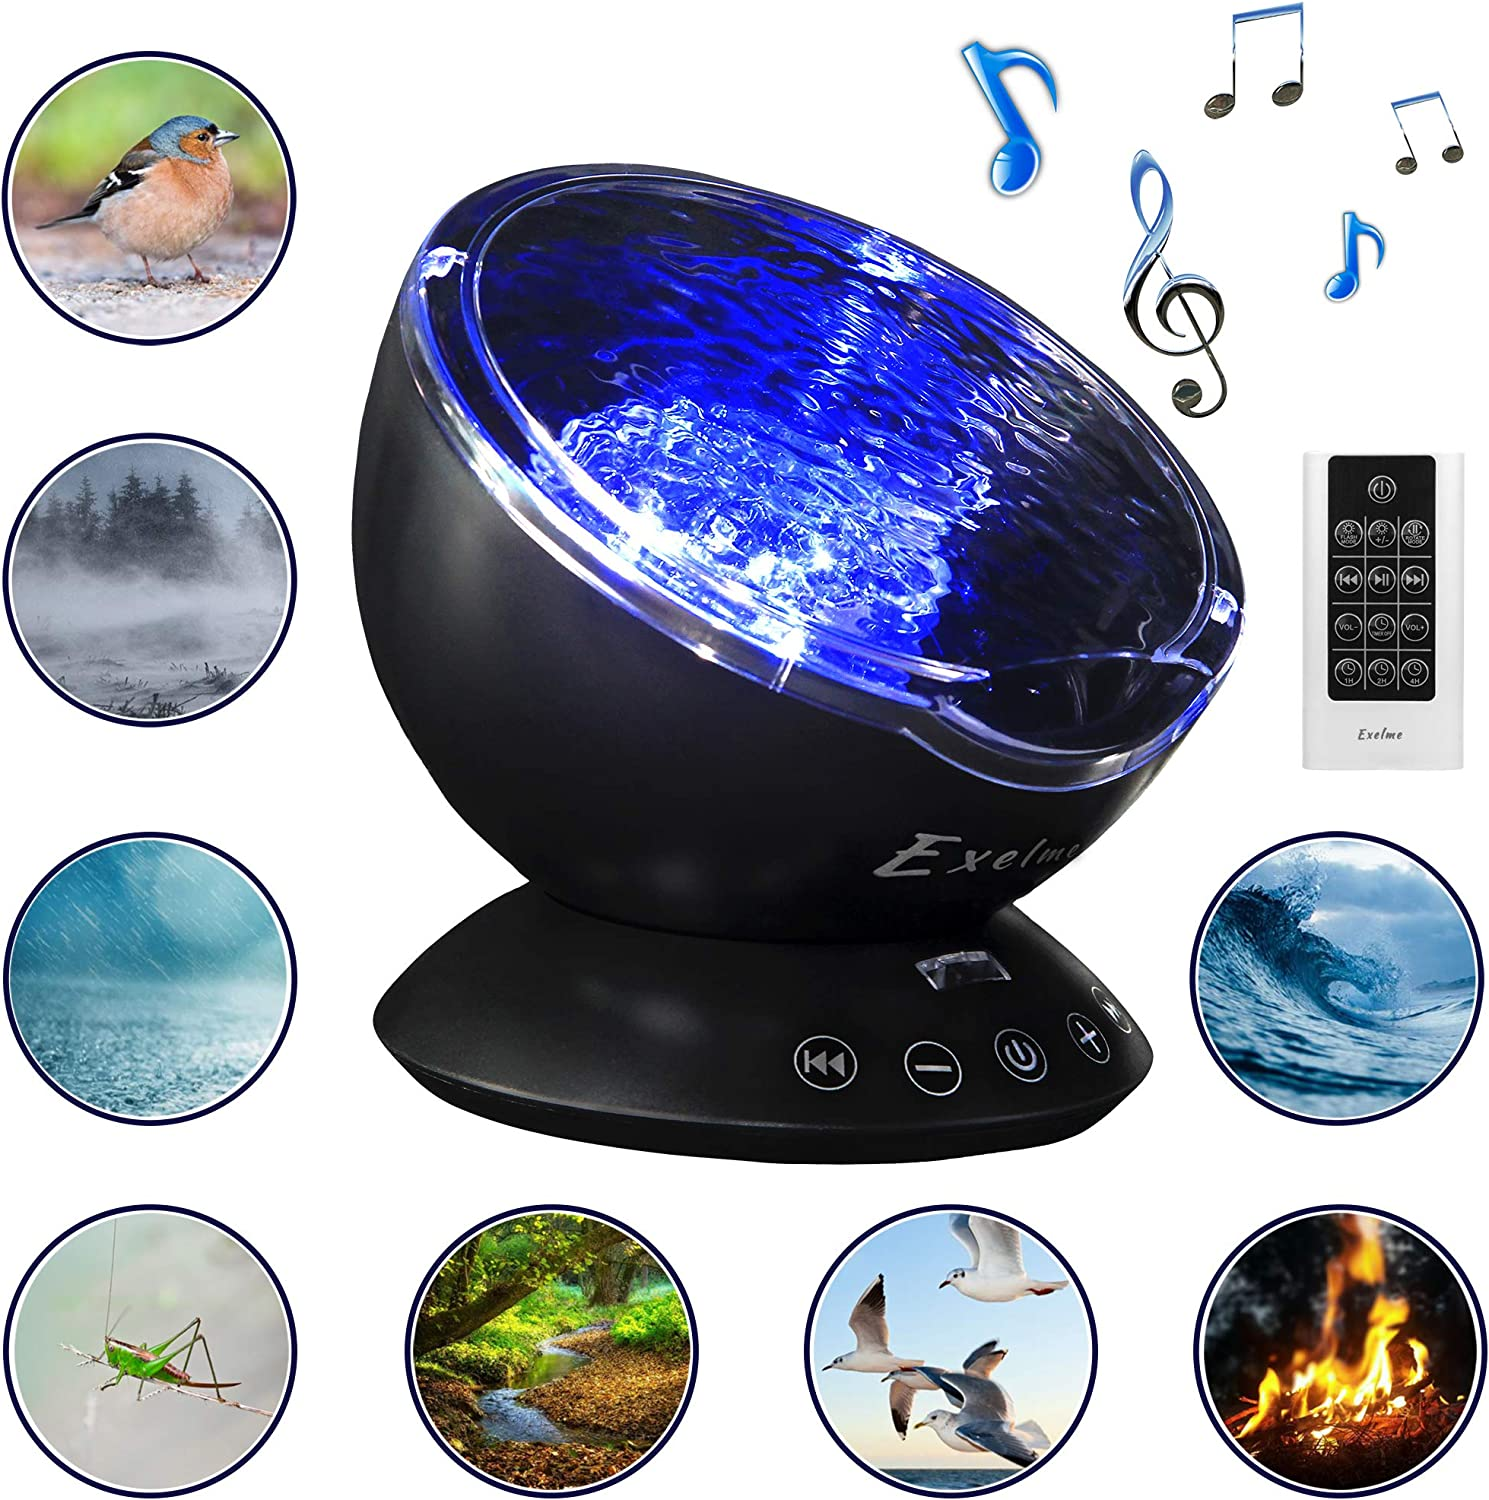 Ocean Wave Projector and Sound Machine 2 in 1 - Night Light Projector with Adjustable Brightness and Color Changing Wave Light Effects - Nightlight for Kids Adults Bedroom – Black